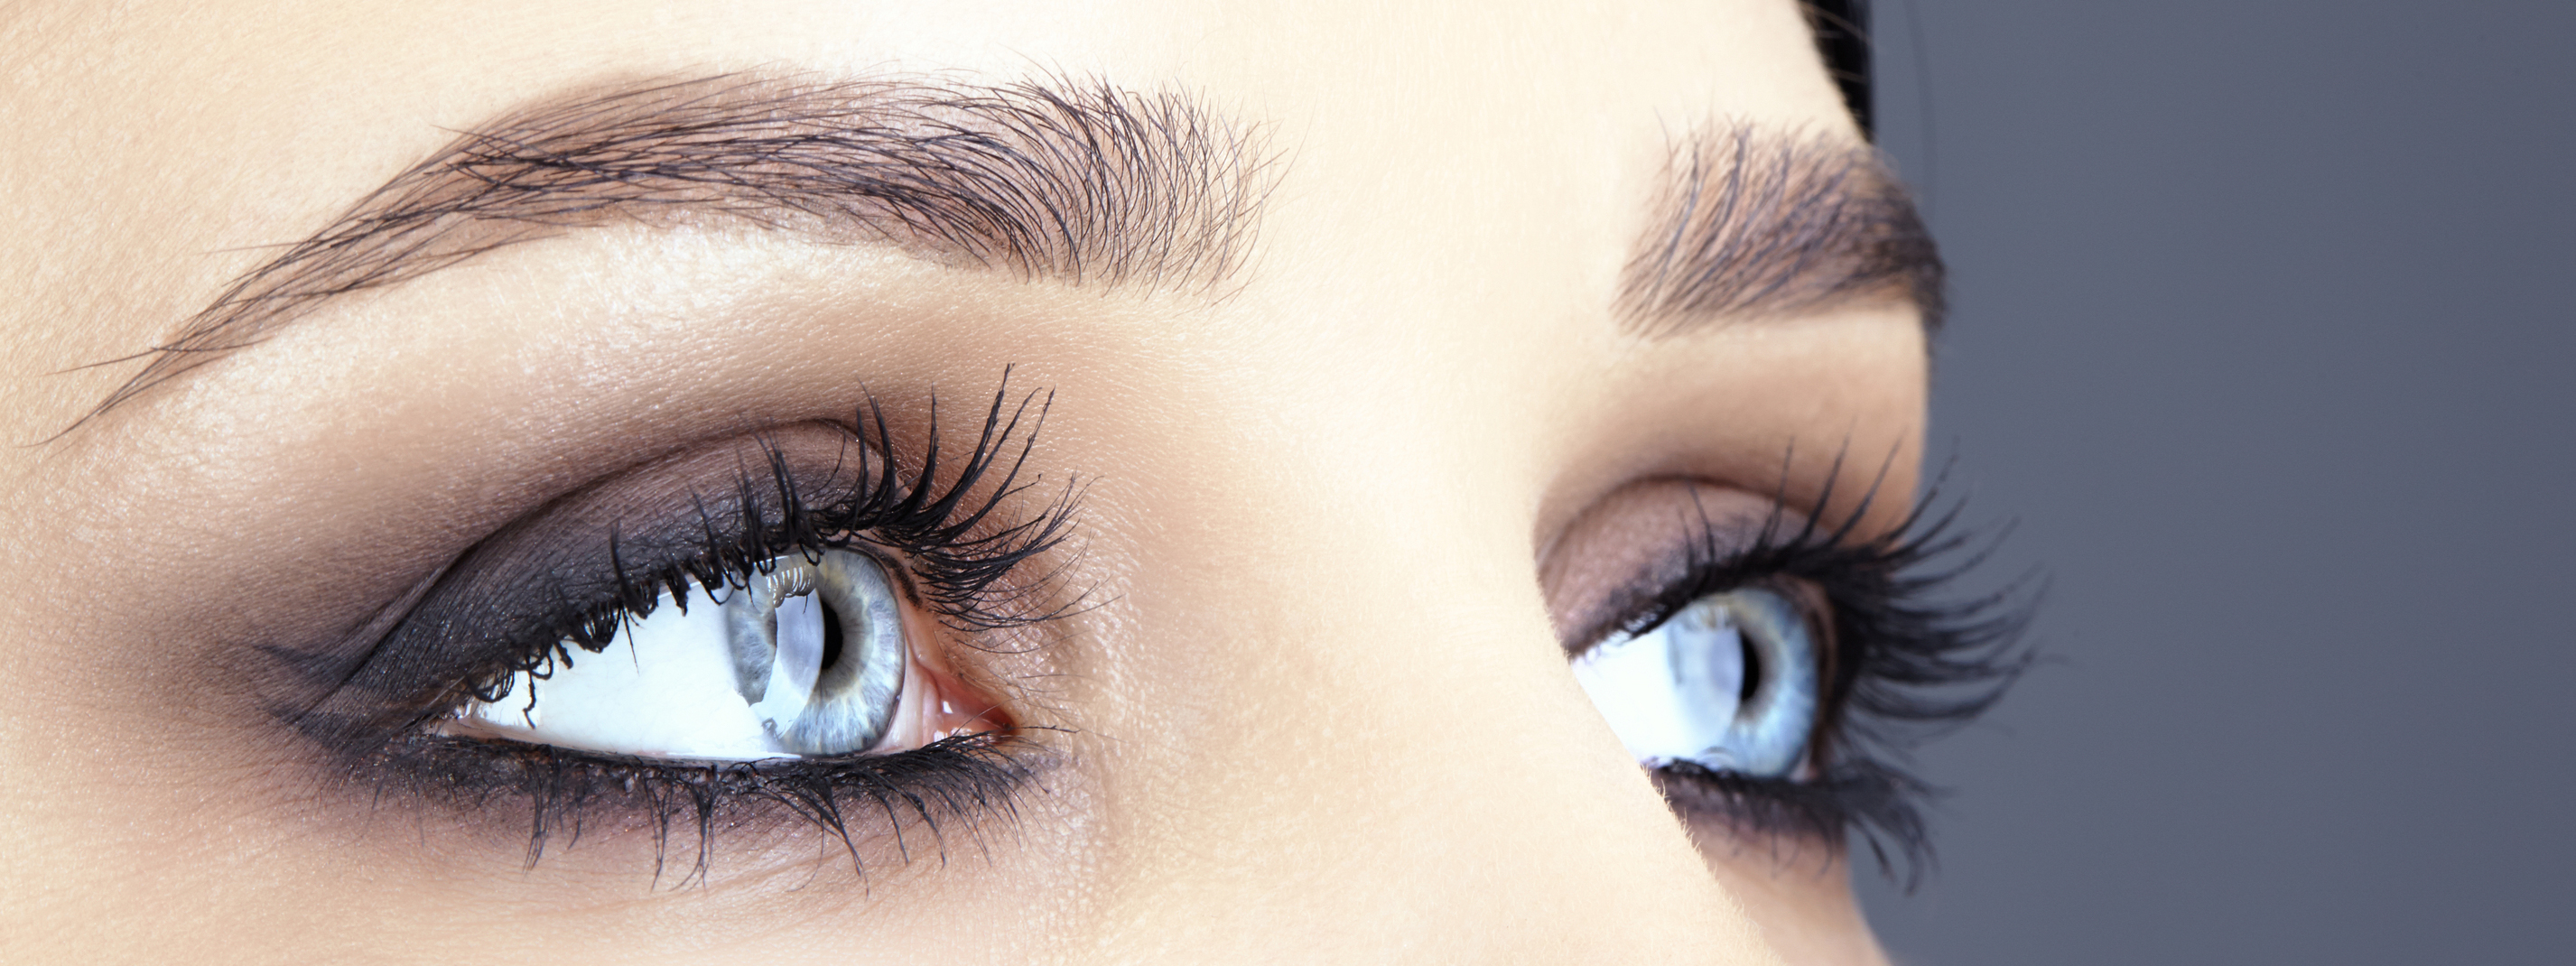 WHY CASTOR OIL IS THE SECRET TO LASH GROWTH – Amalie Blog